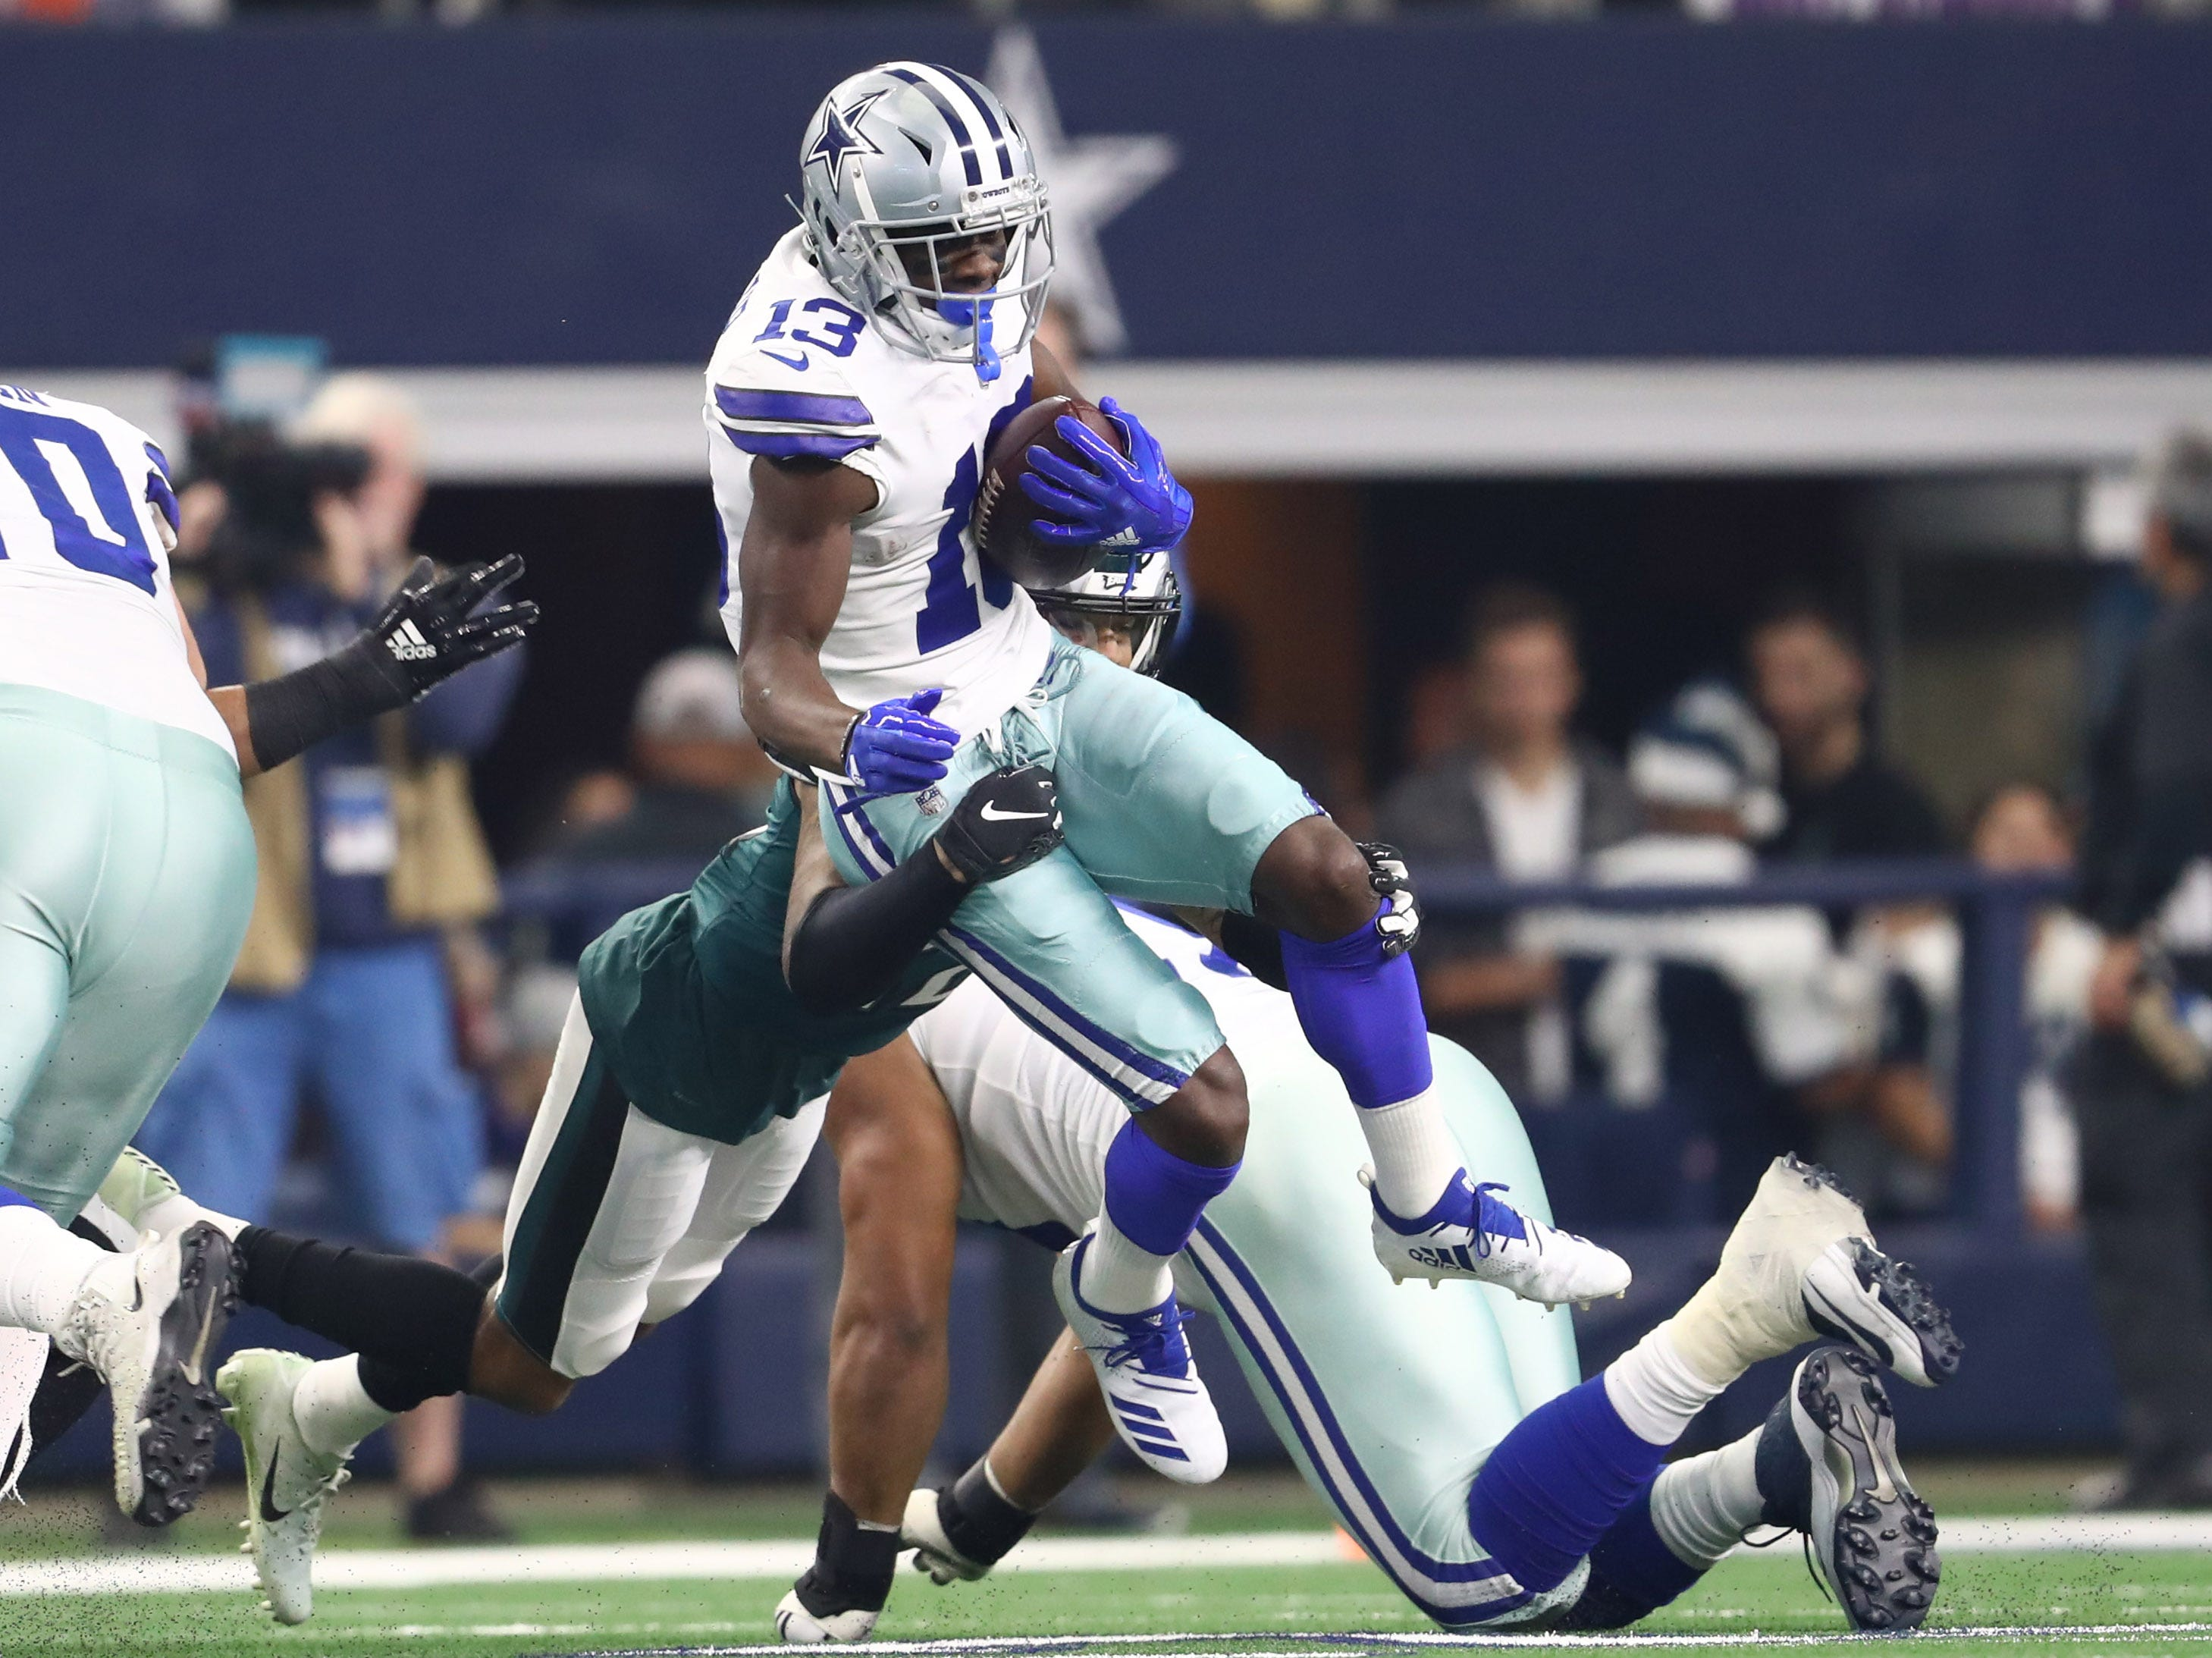 Cowboys receiver Michael Gallup runs after a reception against the Eagles.